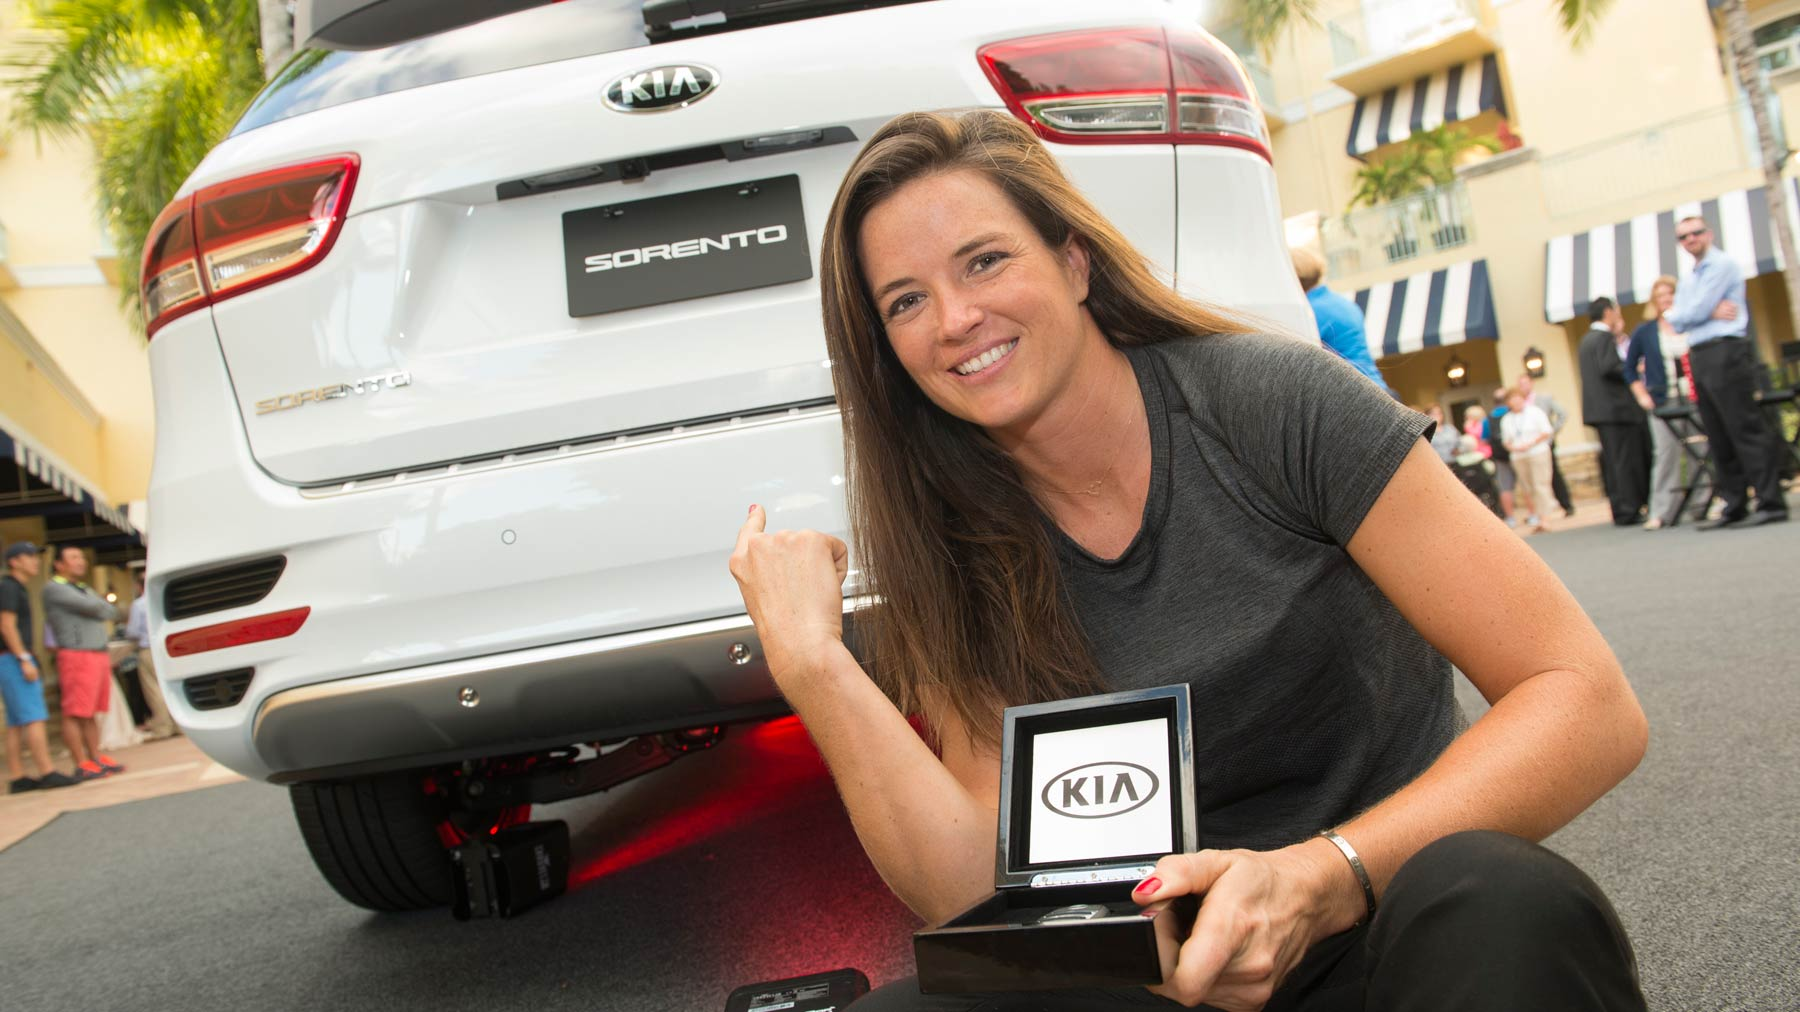 2015 Kia Power Drive Award Winner Joanna Klatten with her new 2016 Kia Sorento